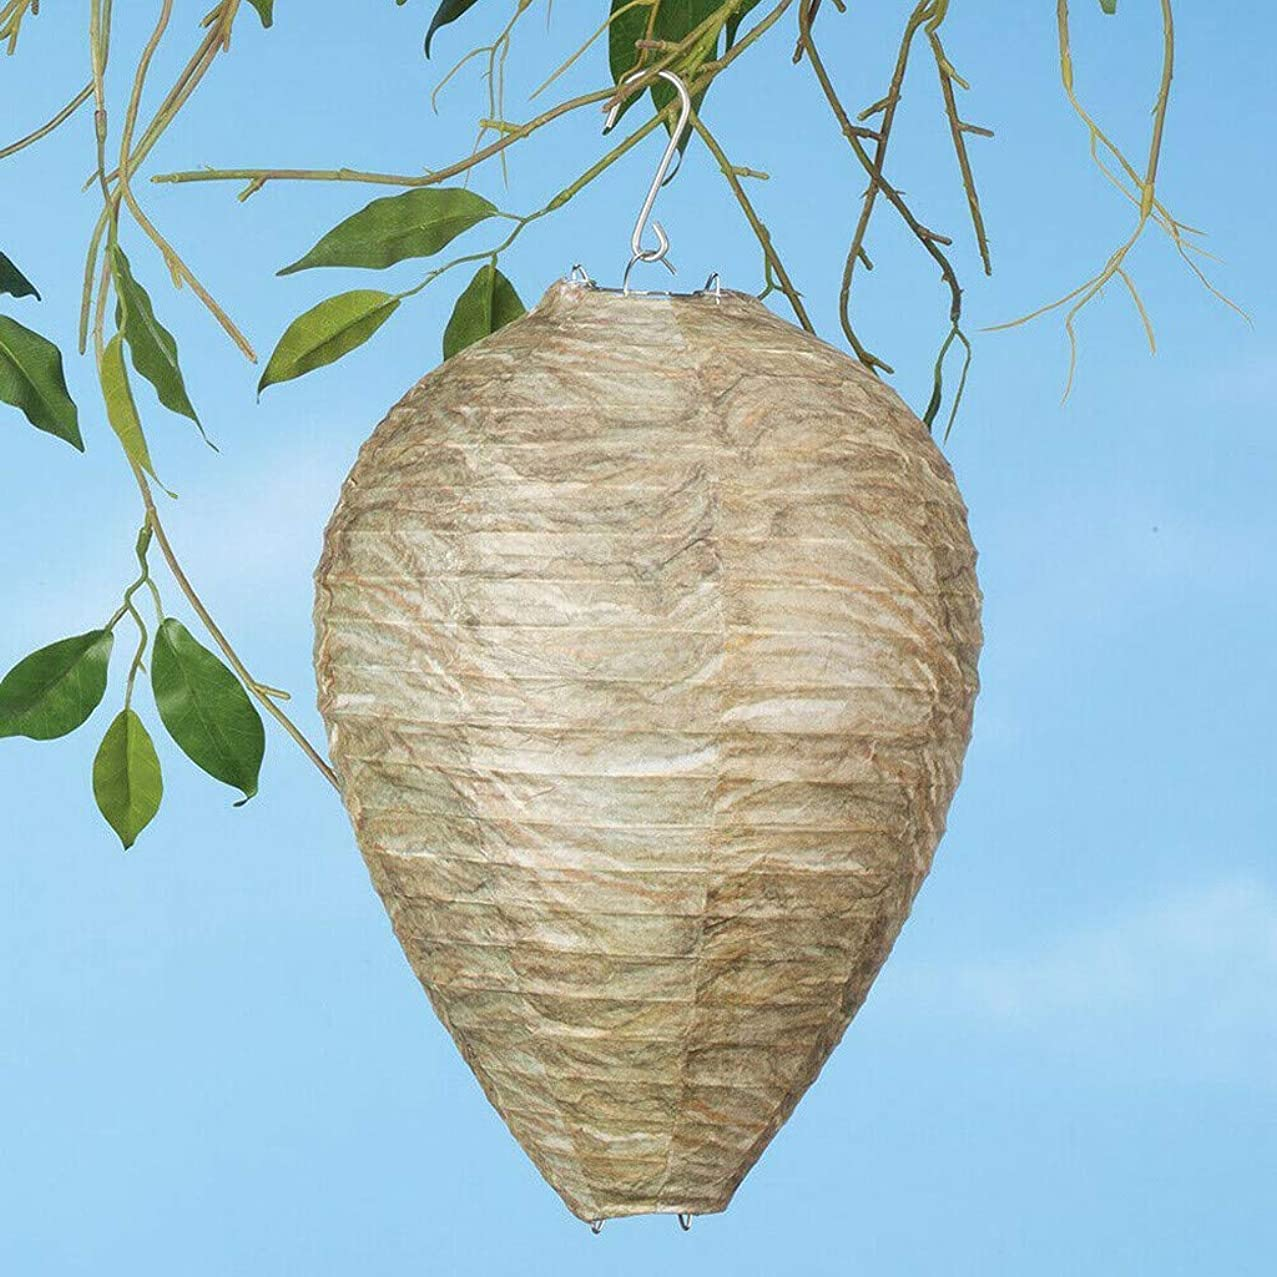 TTbuy Functional and Practical Wasp Deterrent Yellow Jackets Bee Hornets Fake Wasp Nest Simulated Deterrent, Simulated Wasp Deterrent Paper Nest Decoy, Yellowjackets Bee Hornets Fake Wasp